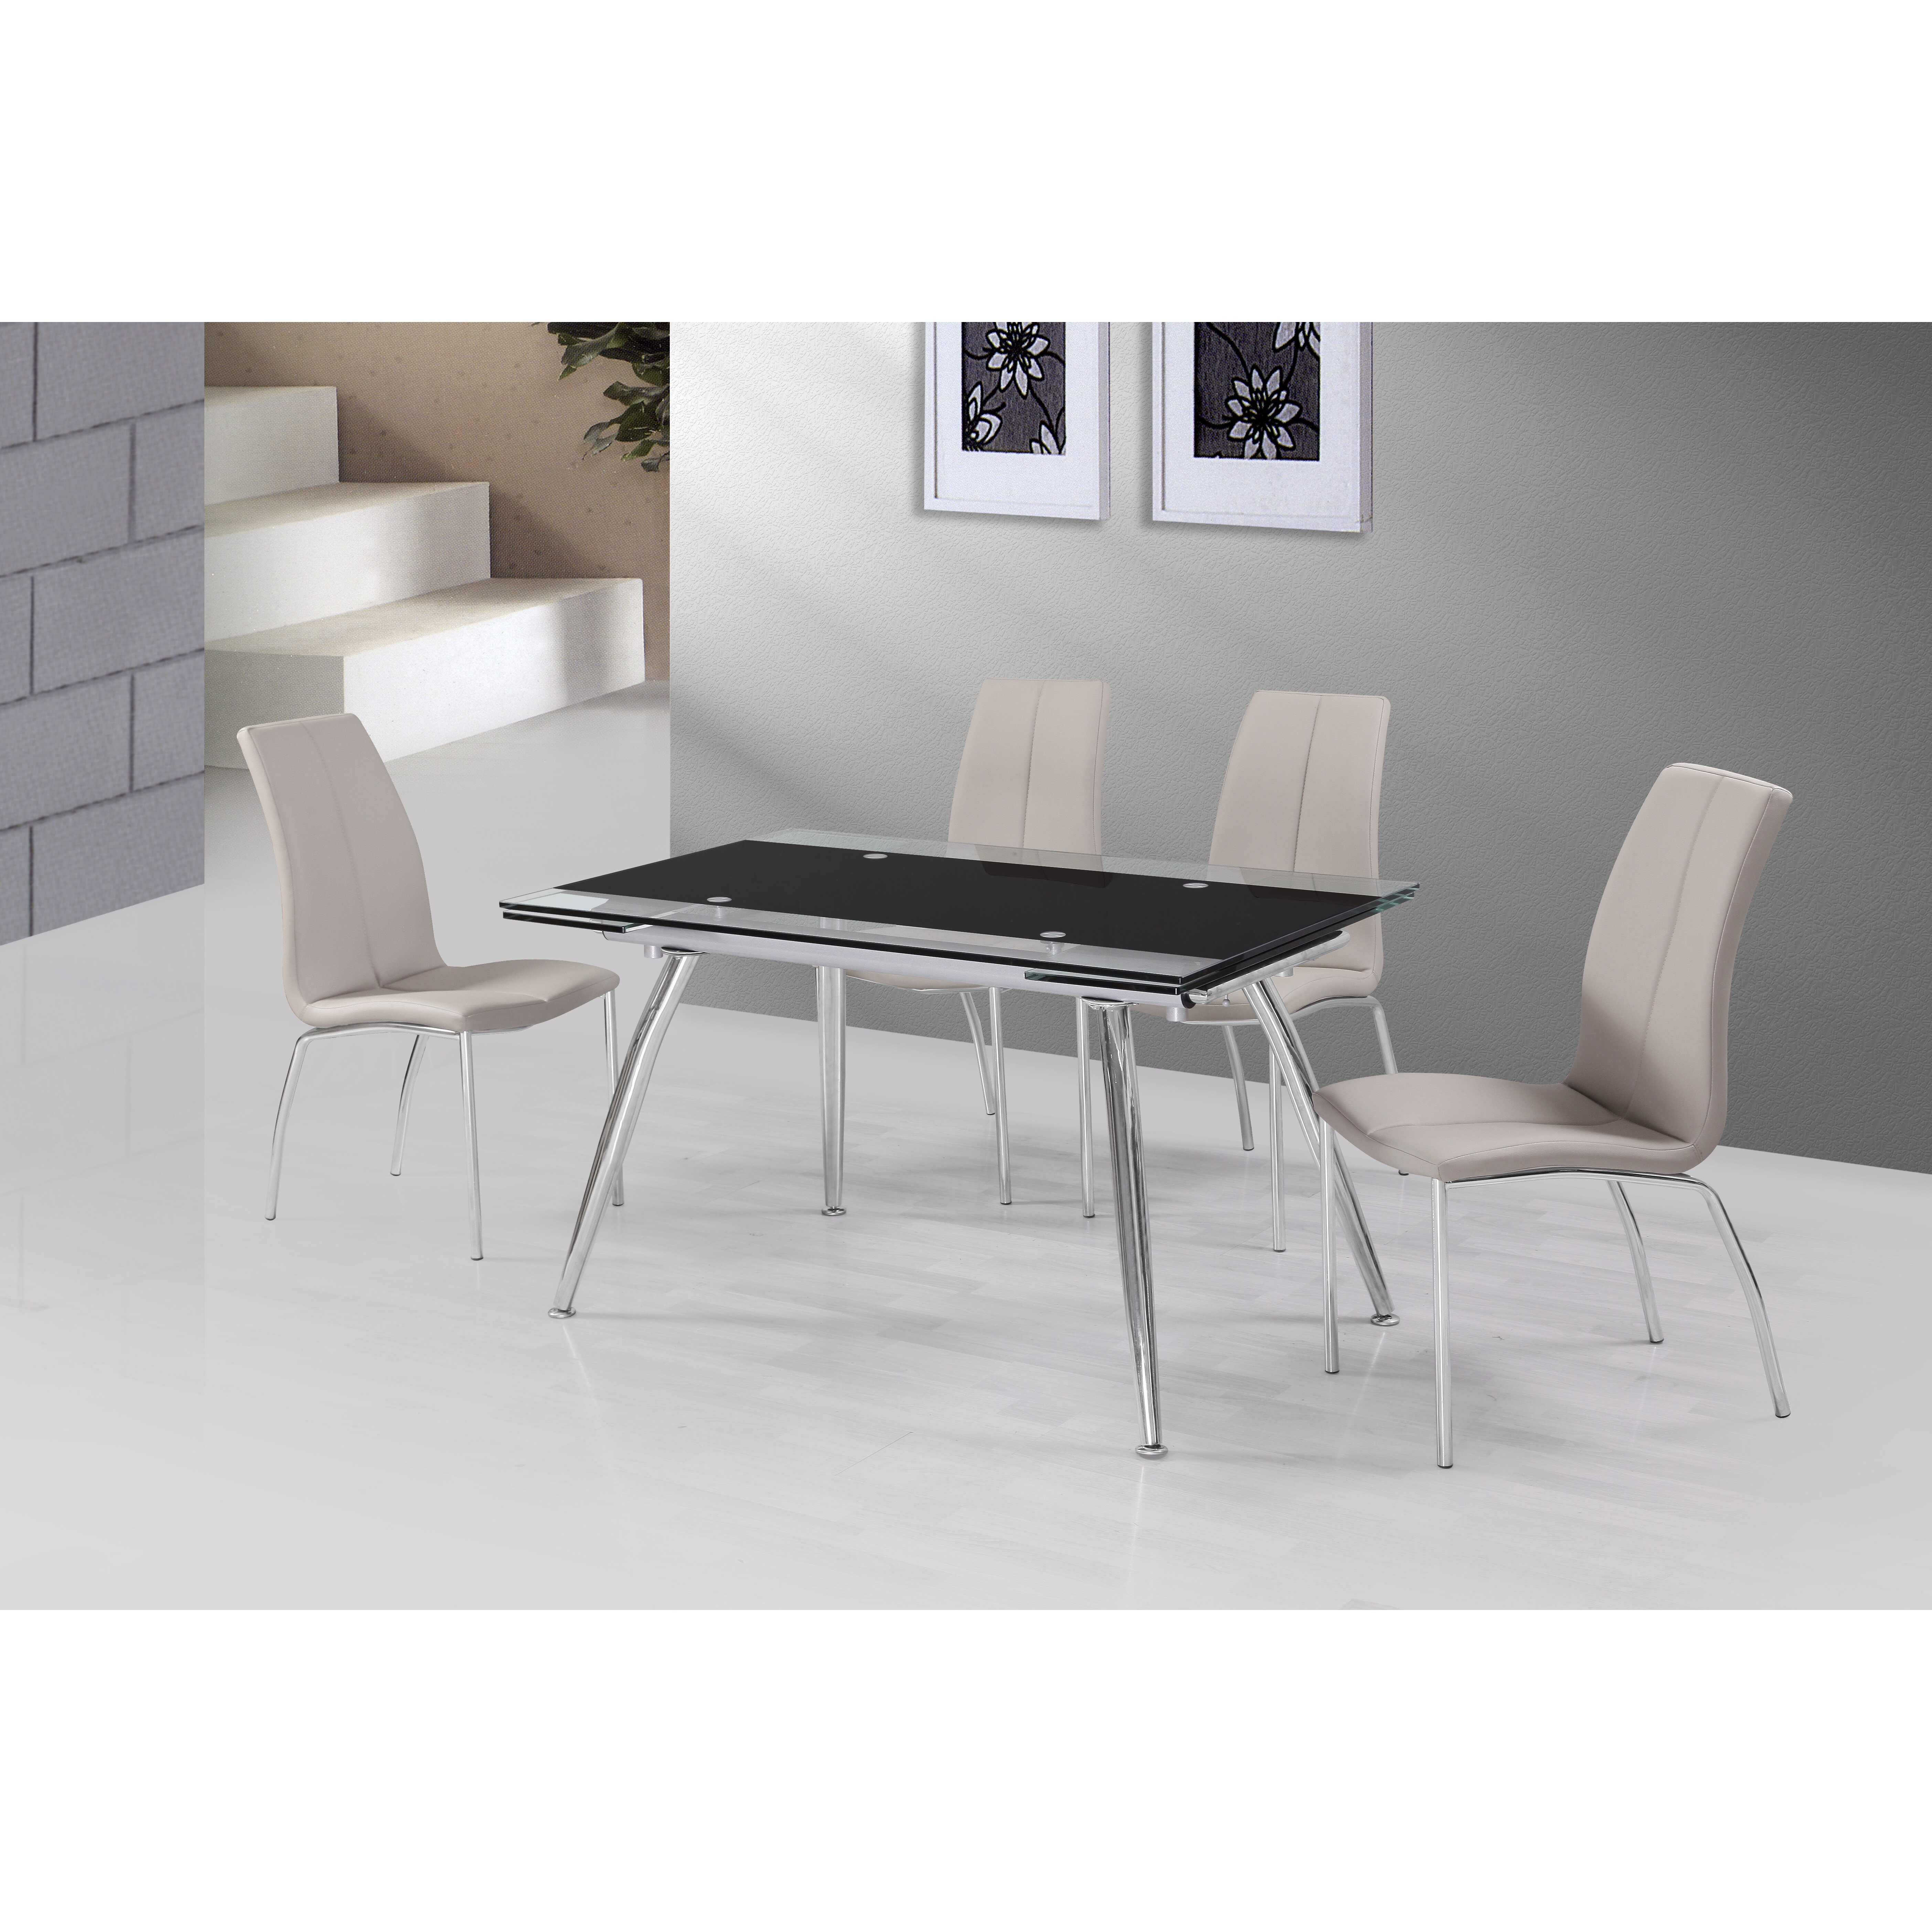 Urban Designs Micha Extendable Dining Table amp Reviews  : Urban Designs Micha Extendable Dining Table from www.wayfair.co.uk size 5616 x 5616 jpeg 3527kB